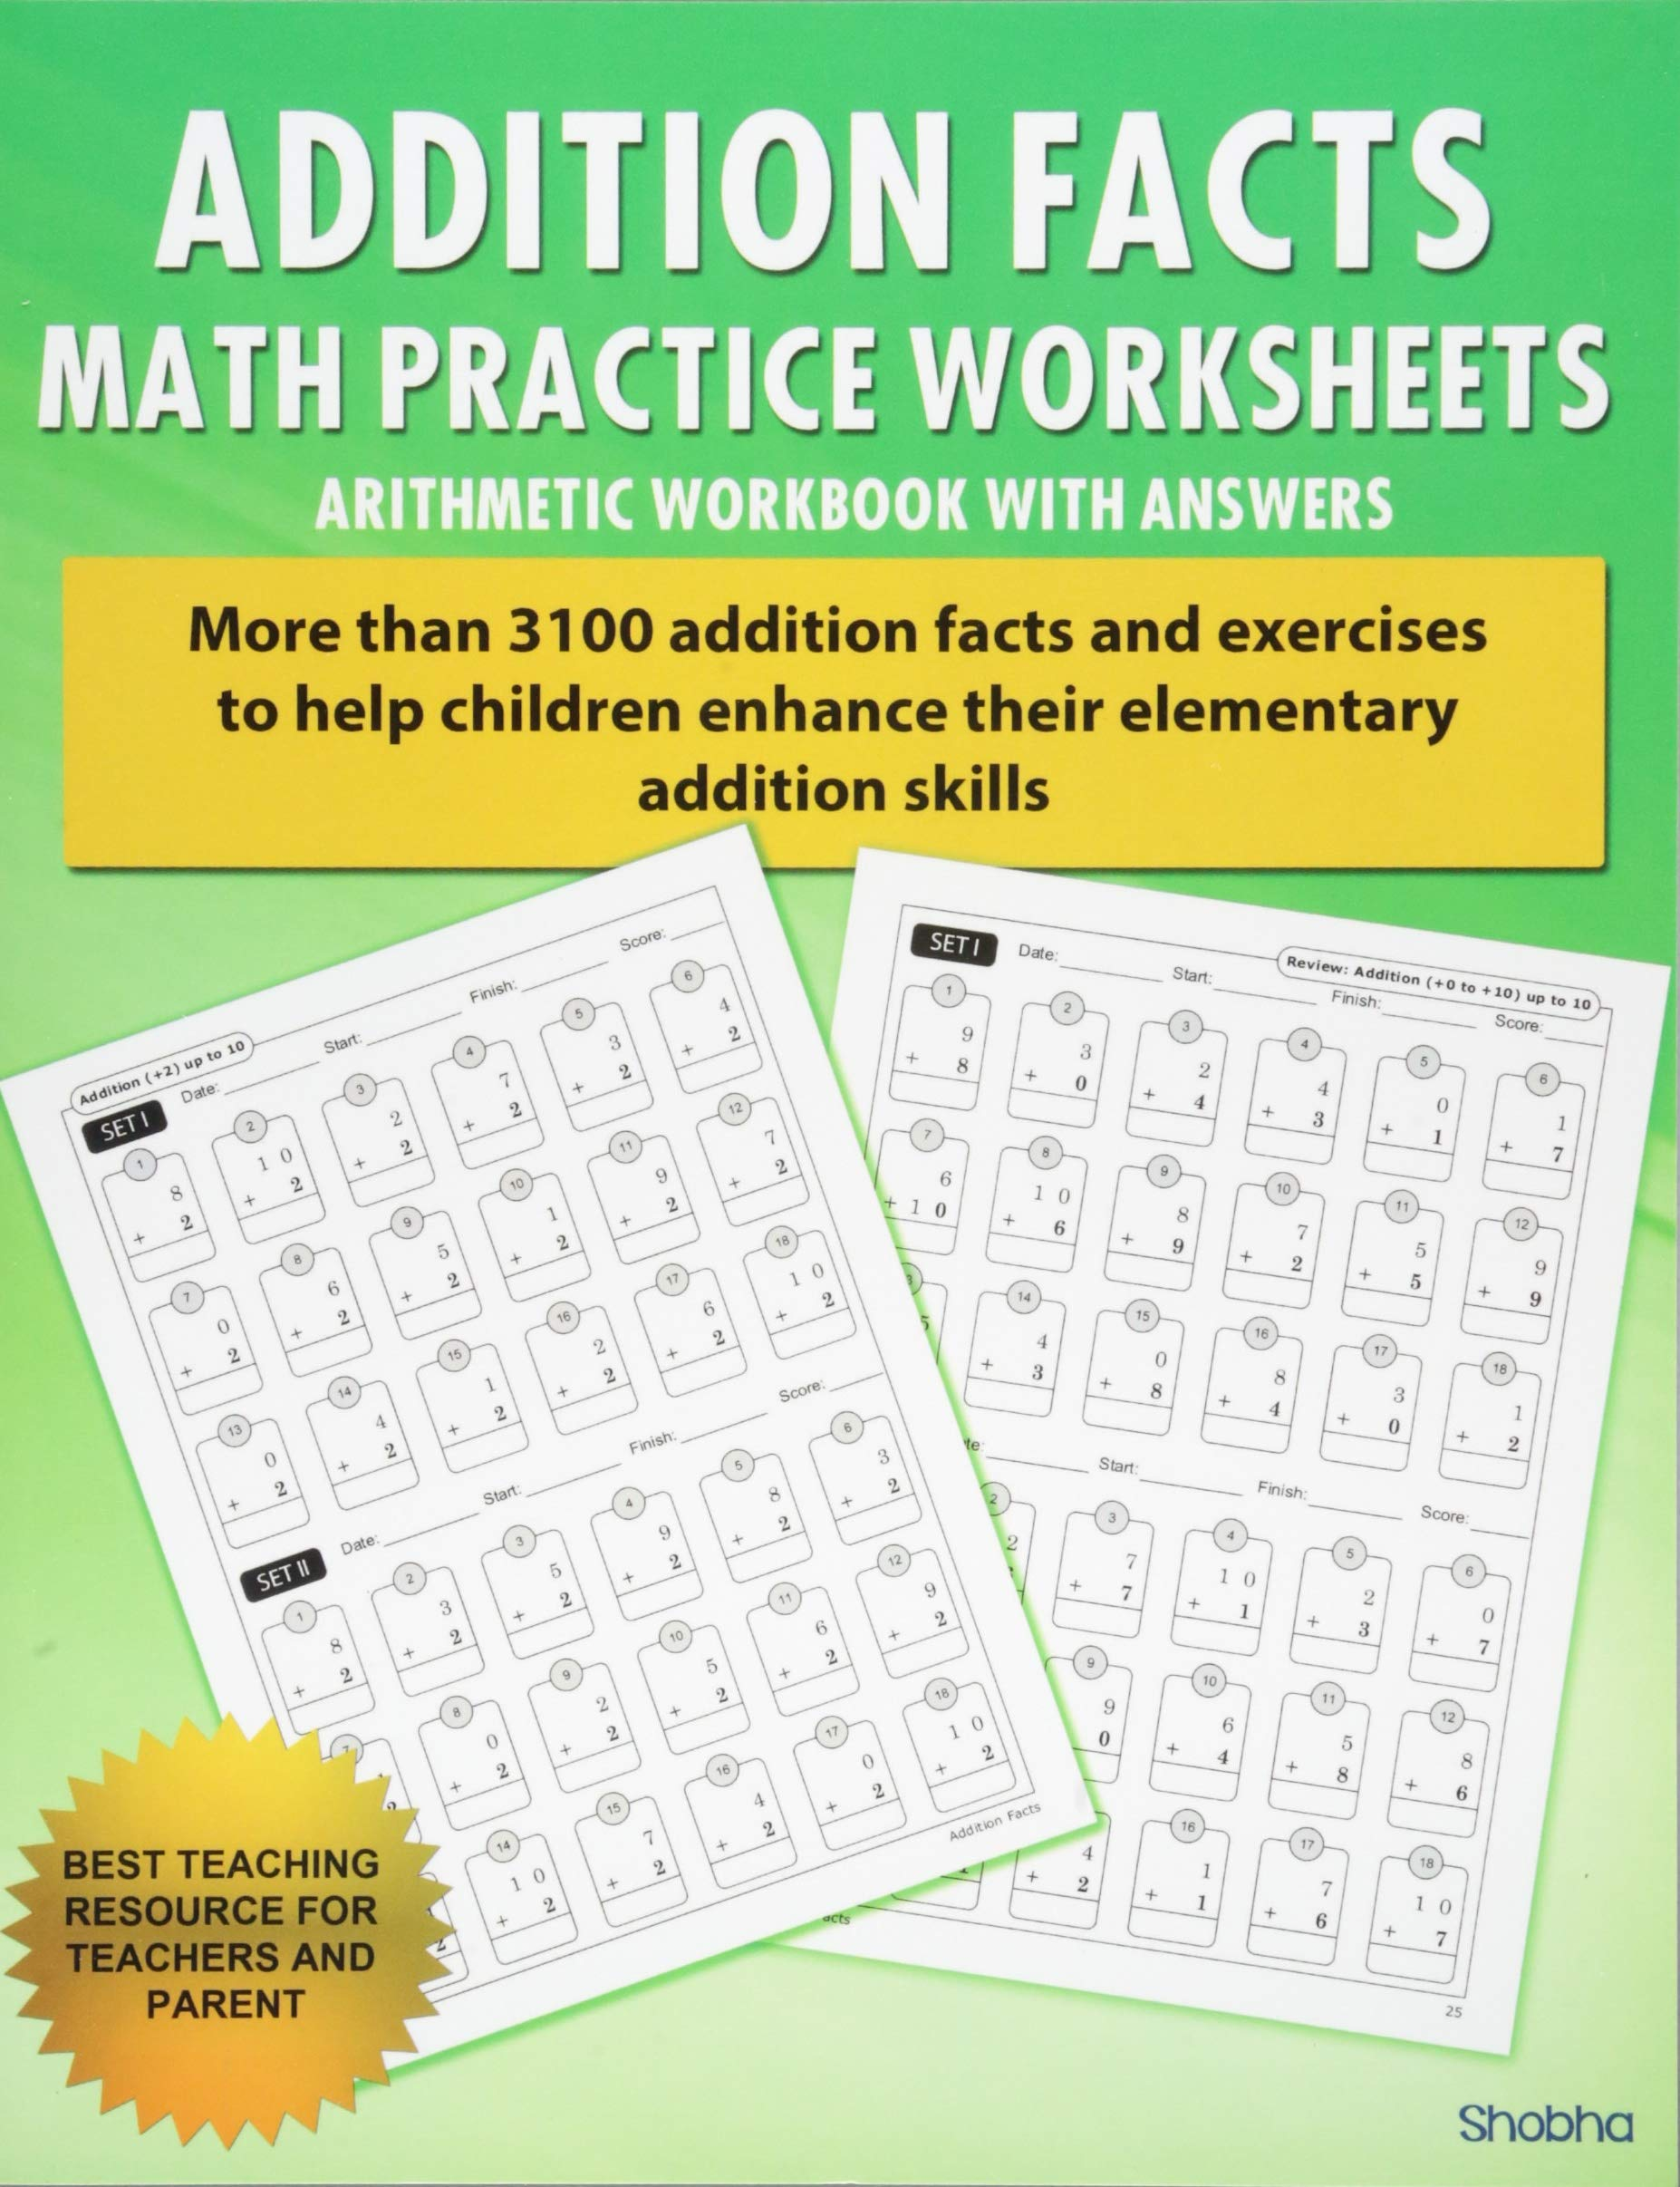 addition facts math practice worksheet arithmetic workbook with  addition facts math practice worksheet arithmetic workbook with answers  daily practice guide for elementary students elementary addition series  volume